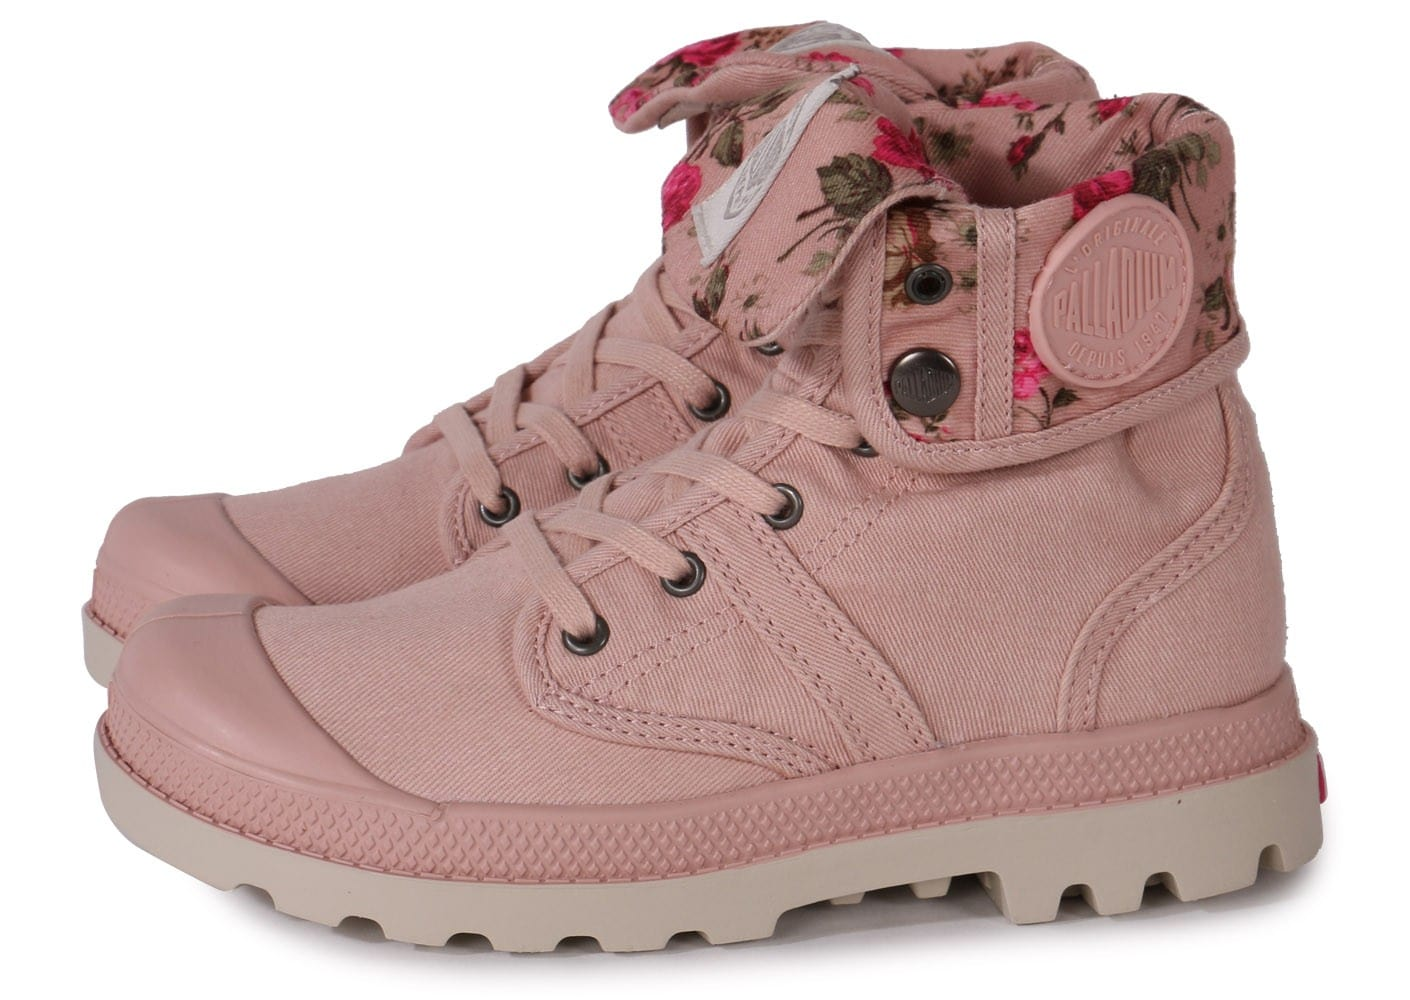 Chaussures Chausport Palladium Twl Us Baggy Saumon vwFqRnSU